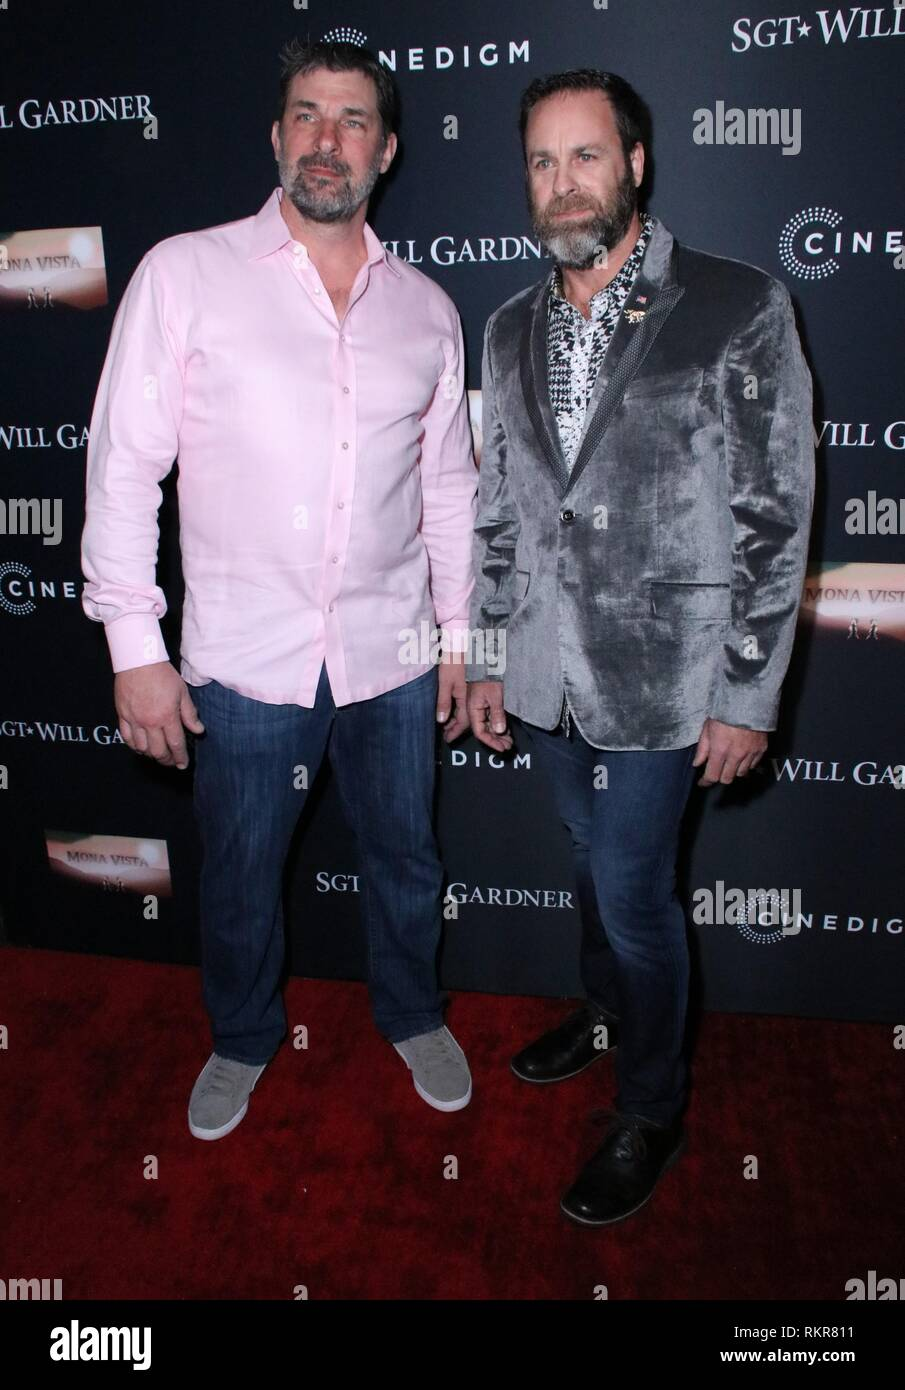 World Premiere of 'Sgt. Will Gardner' - Arrivals  Featuring: Shad Hamilton, Hugh Middleton Where: Los Angeles, California, United States When: 08 Jan 2019 Credit: WENN.com - Stock Image